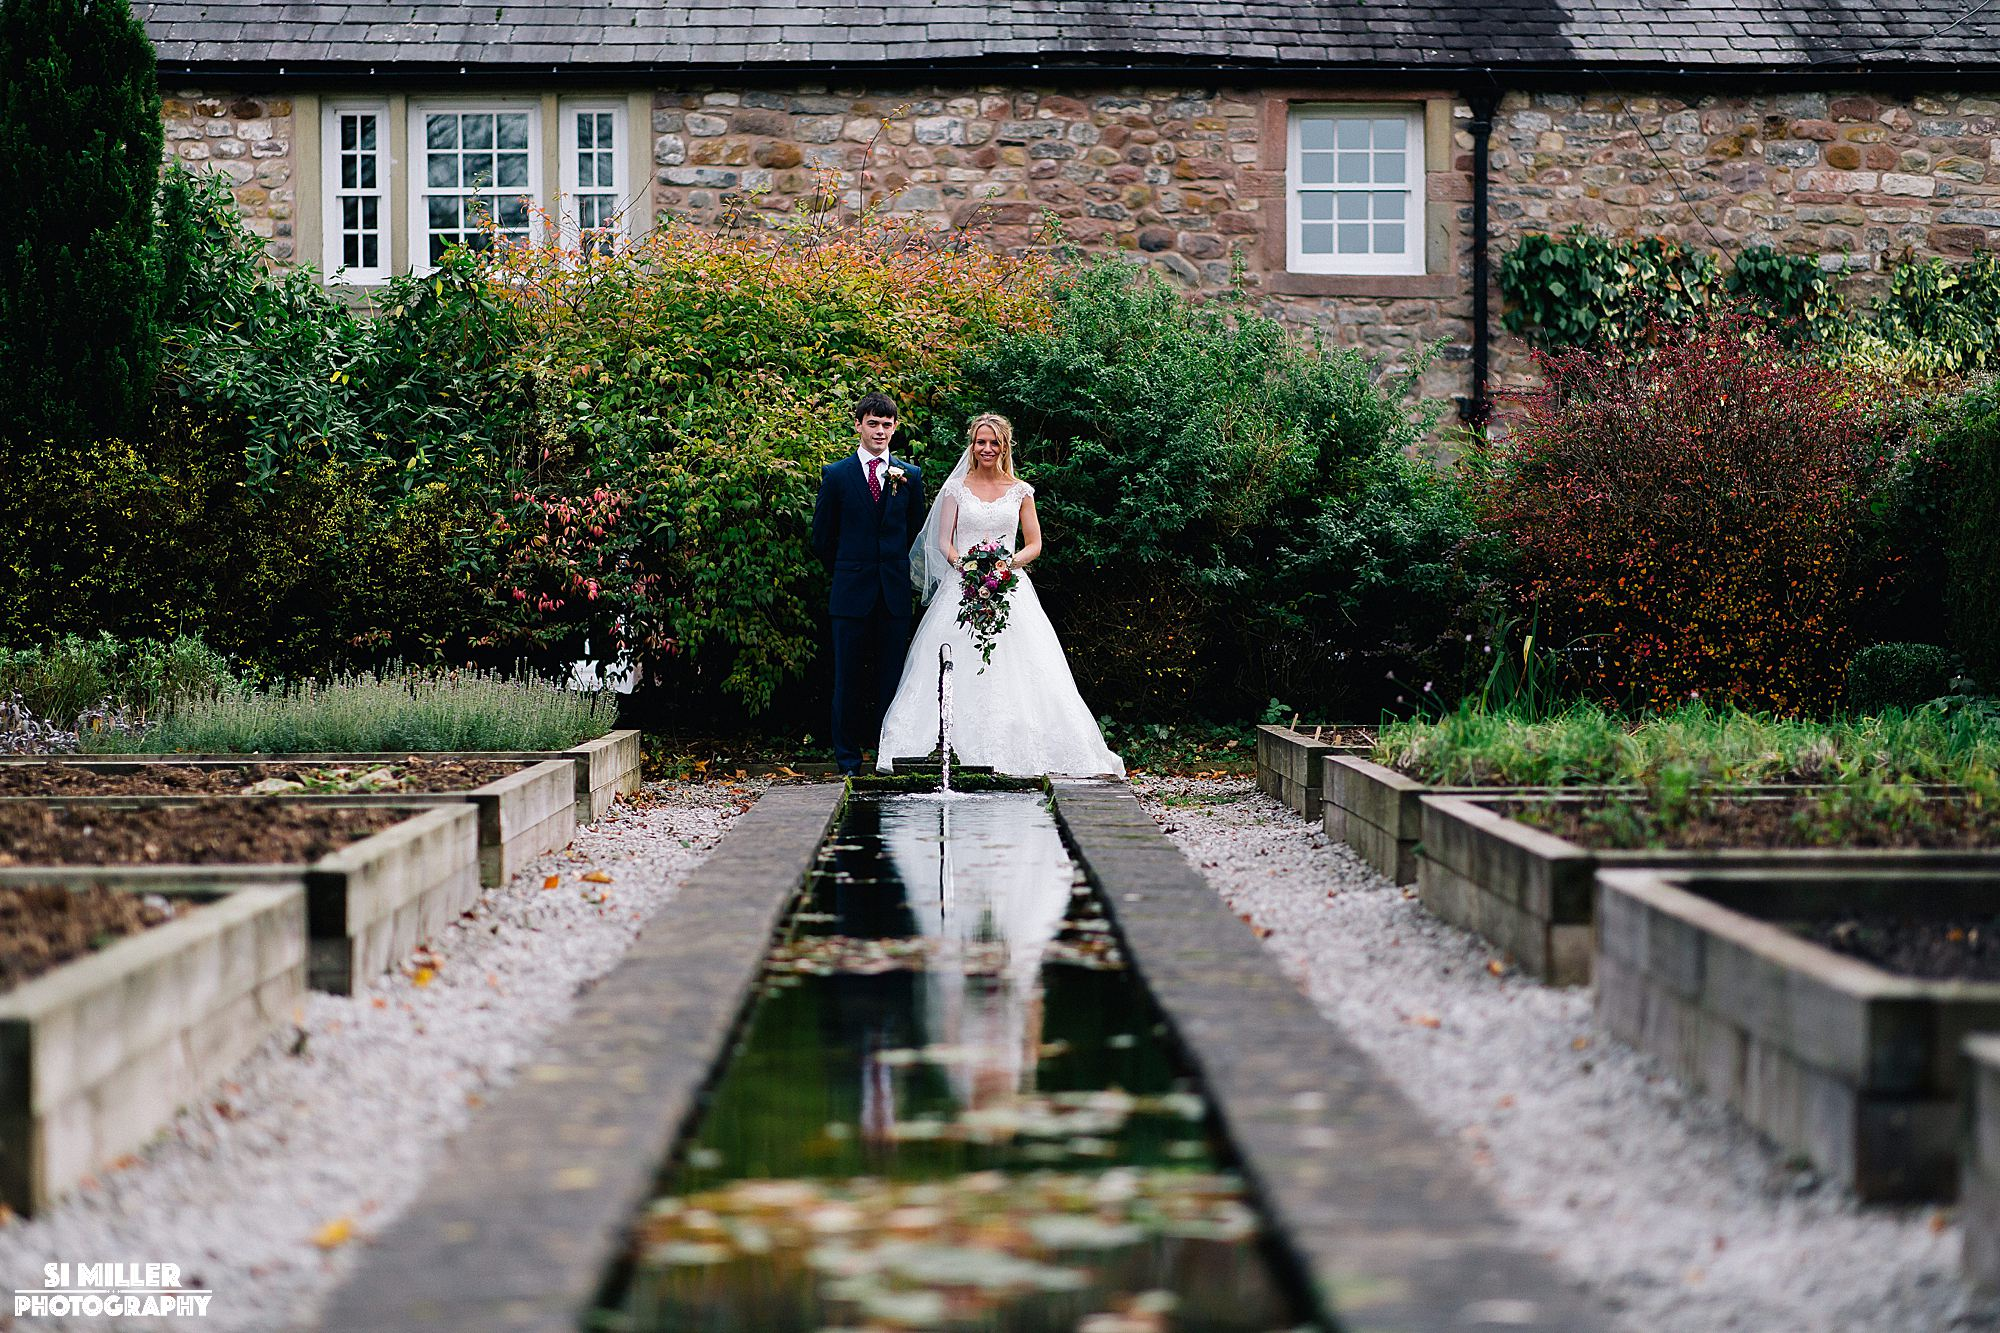 Bride and groom in gardens at inn at Whitewell with reflection in water